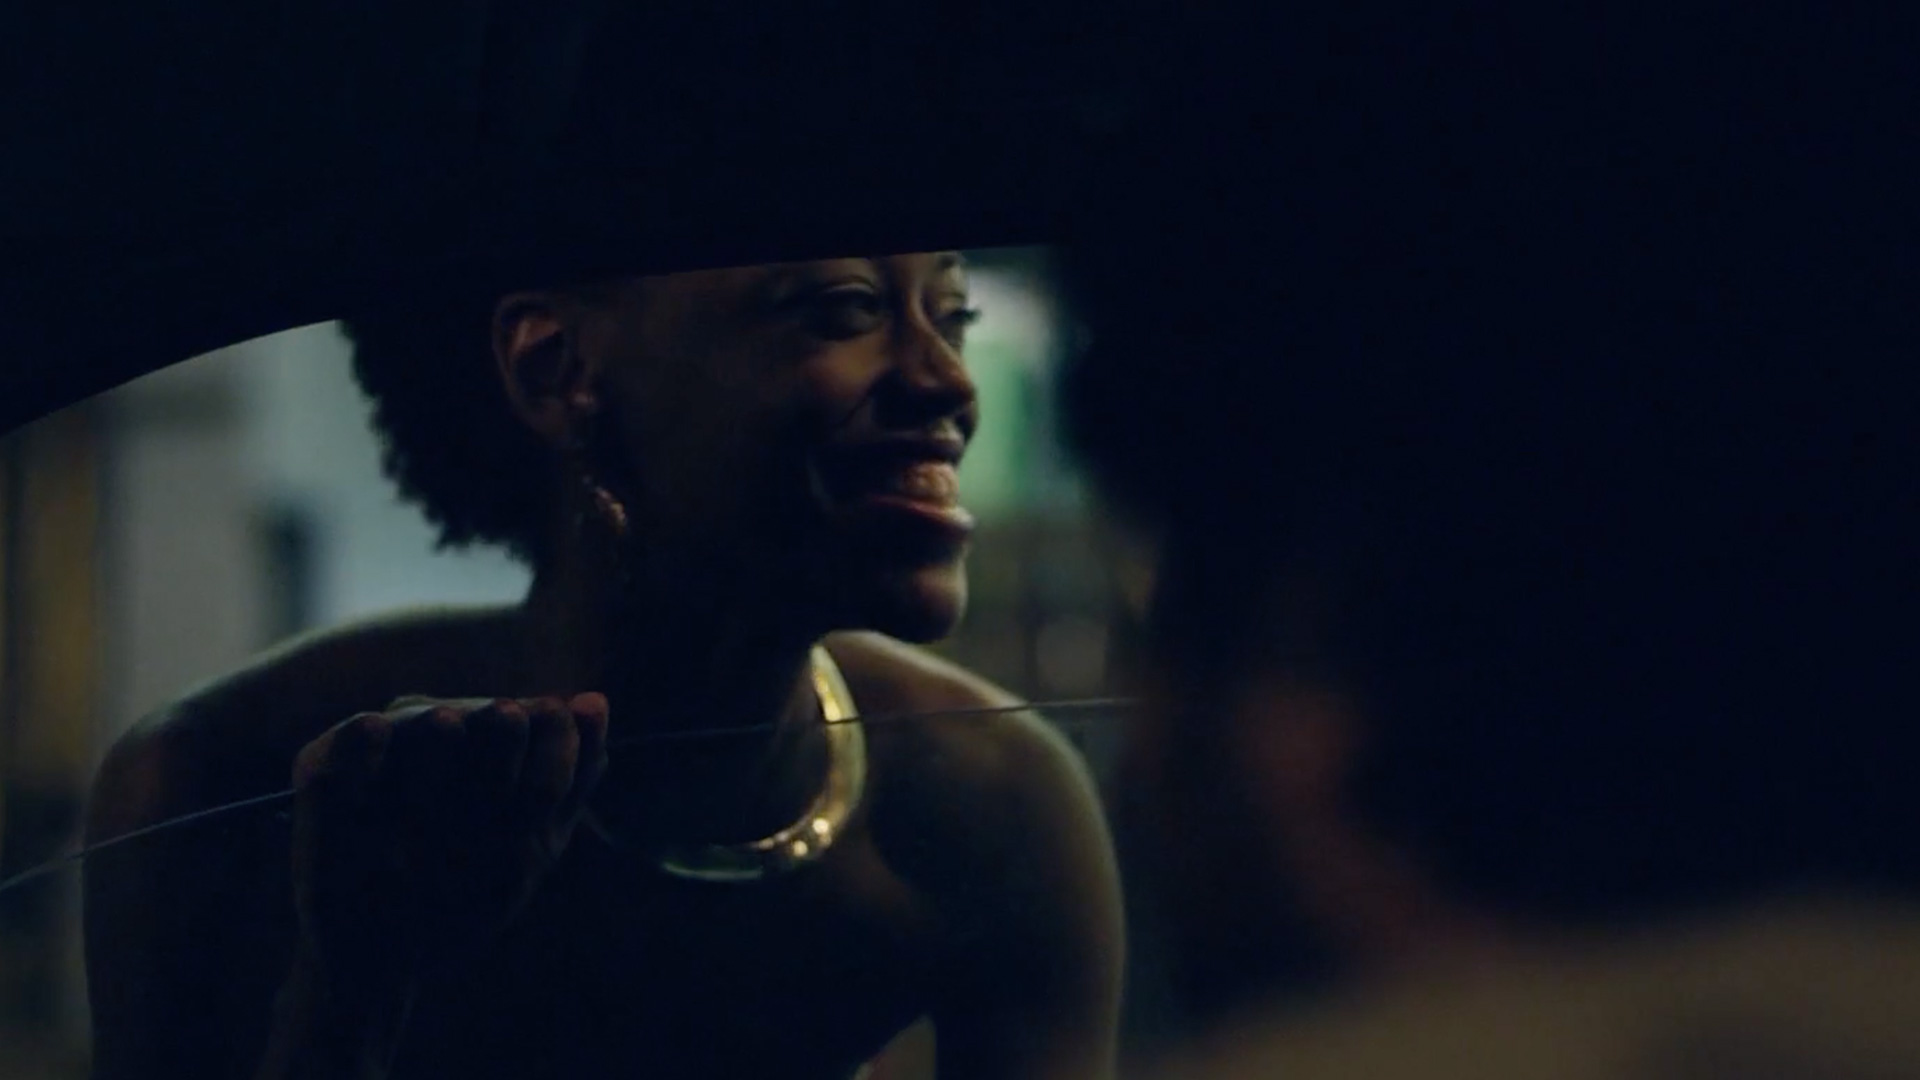 Woman smiling through a car window at night